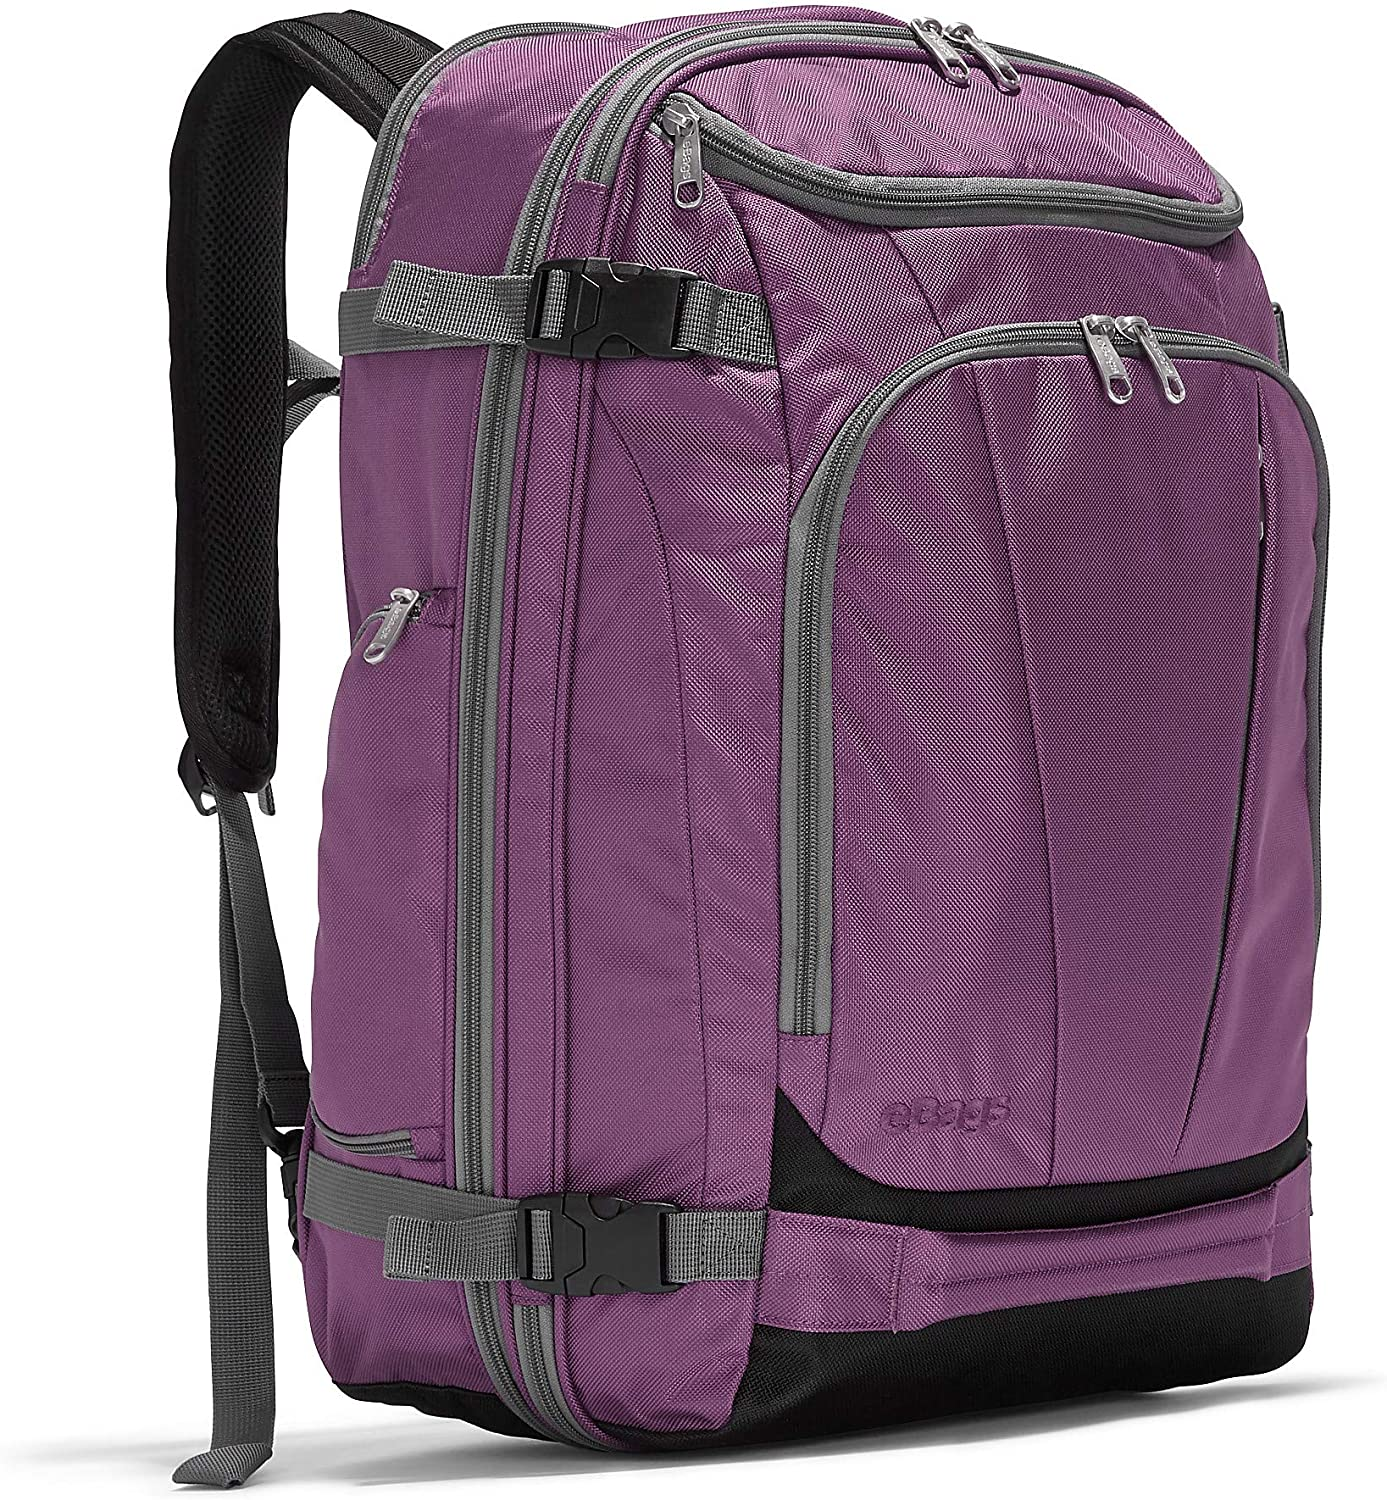 eBags Mother Lode Travel Backpack (Eggplant)